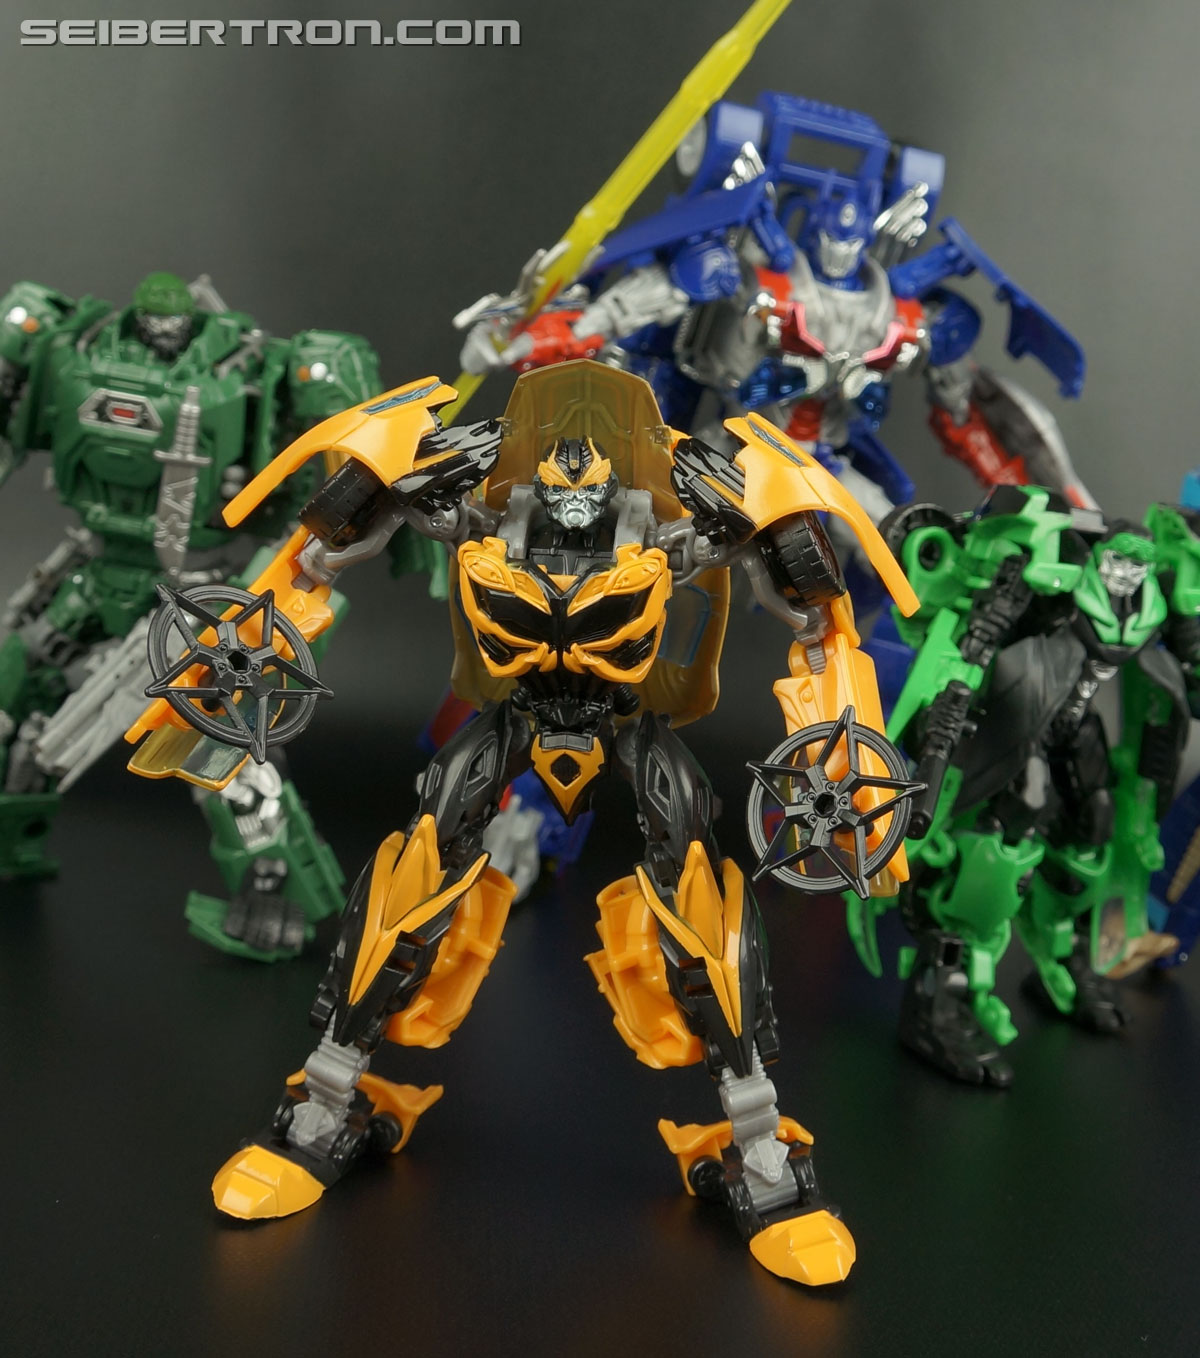 Transformers Age of Extinction: Generations Bumblebee (Image #168 of 190)